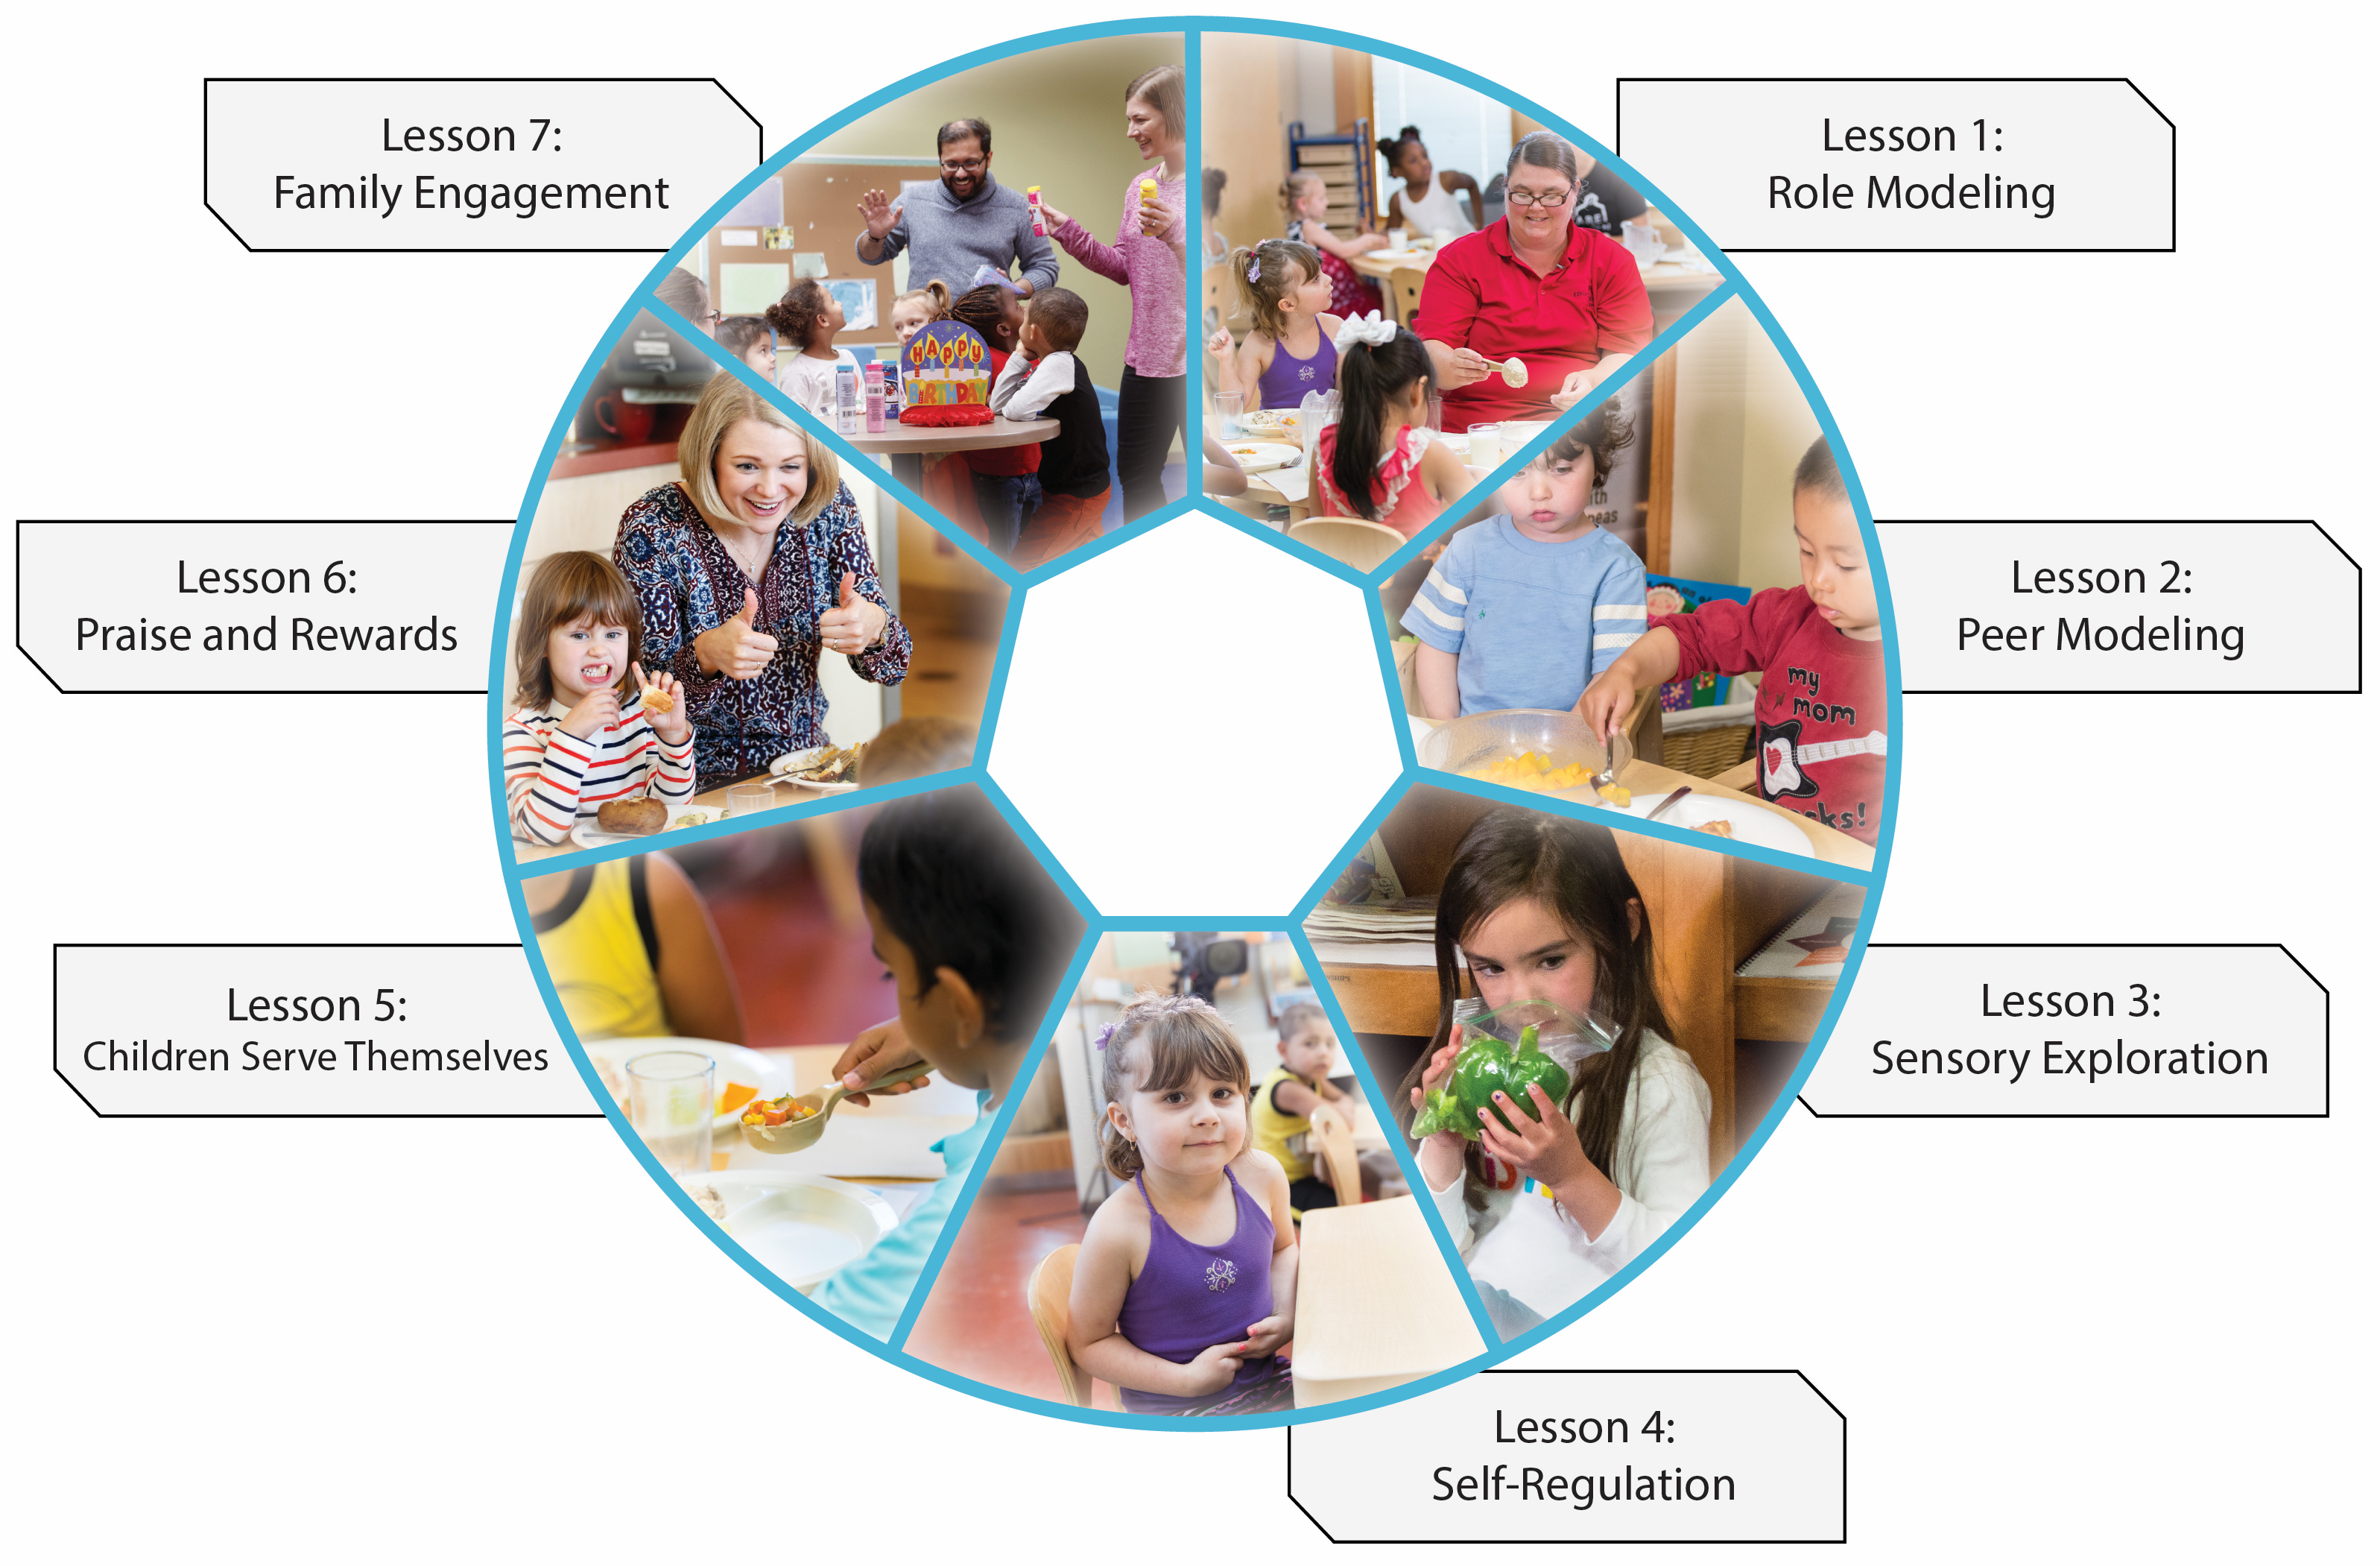 EAT Practice Wheel with the 7 lessons listed with images for each